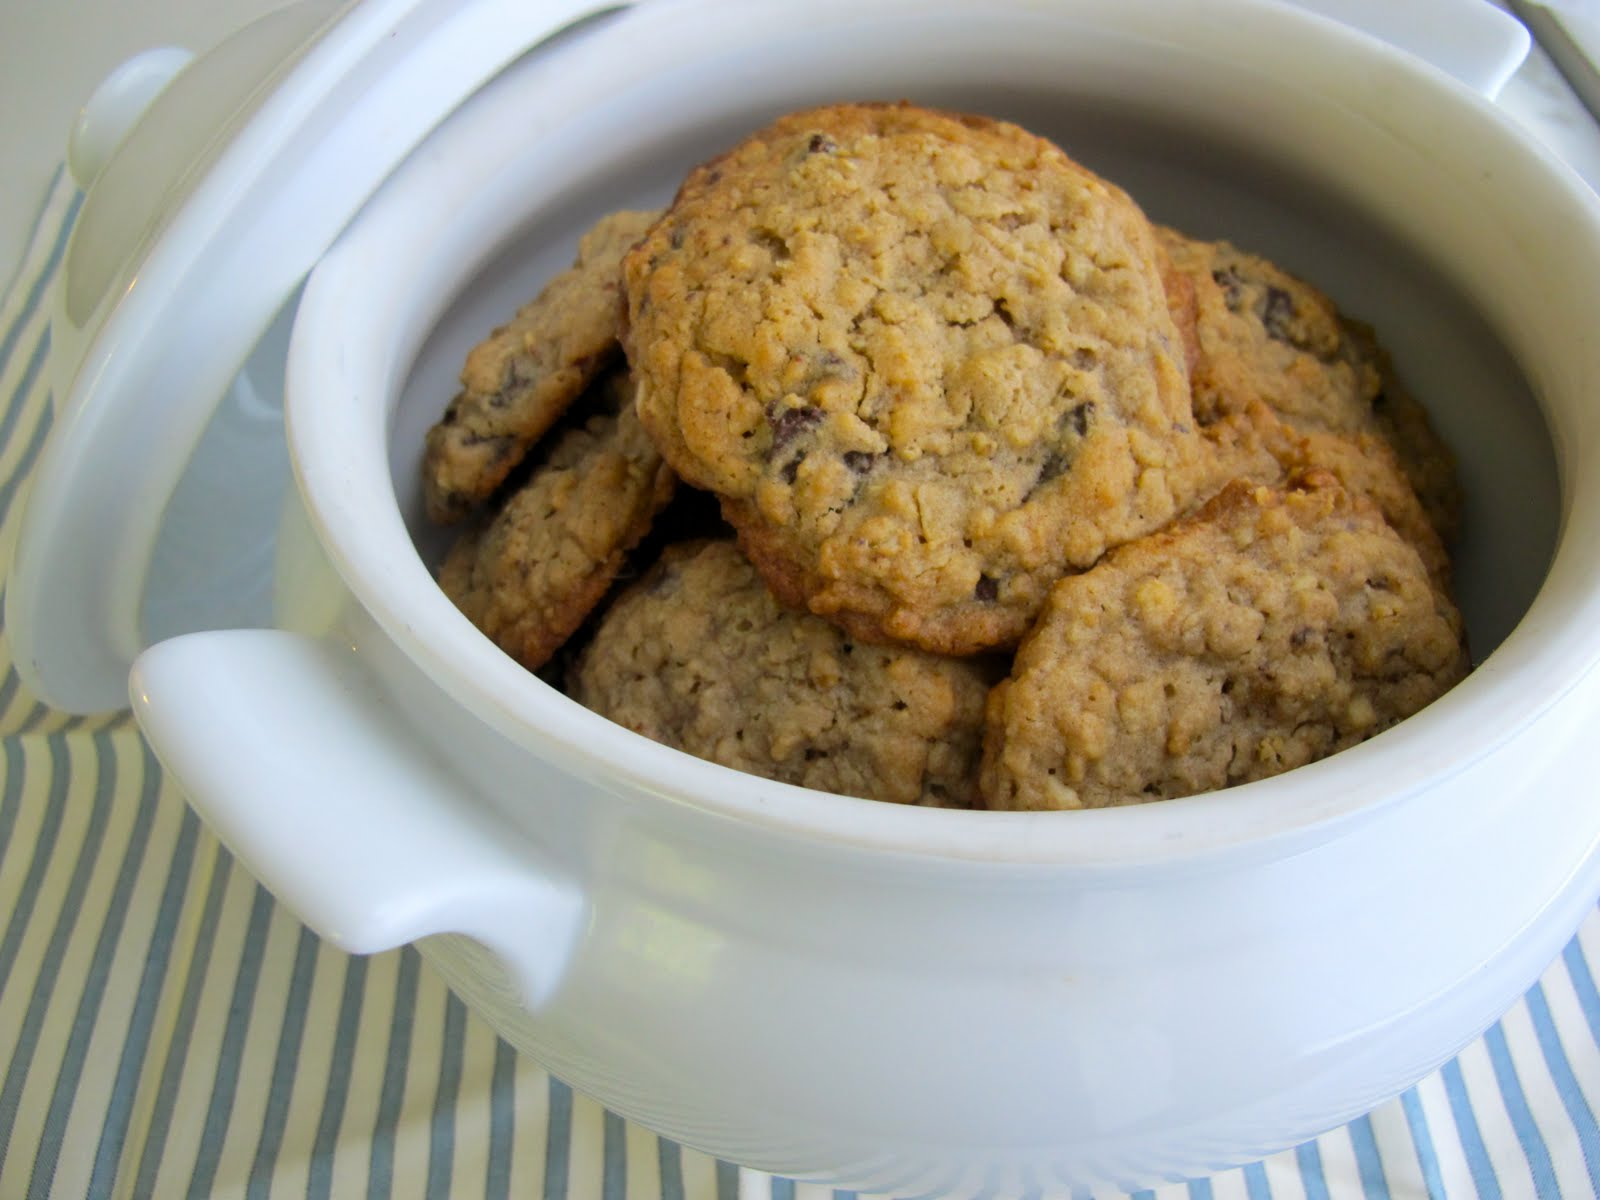 ... Peanut Butter Oatmeal & Chocolate Chip Cookies Recipe | Weekend Food